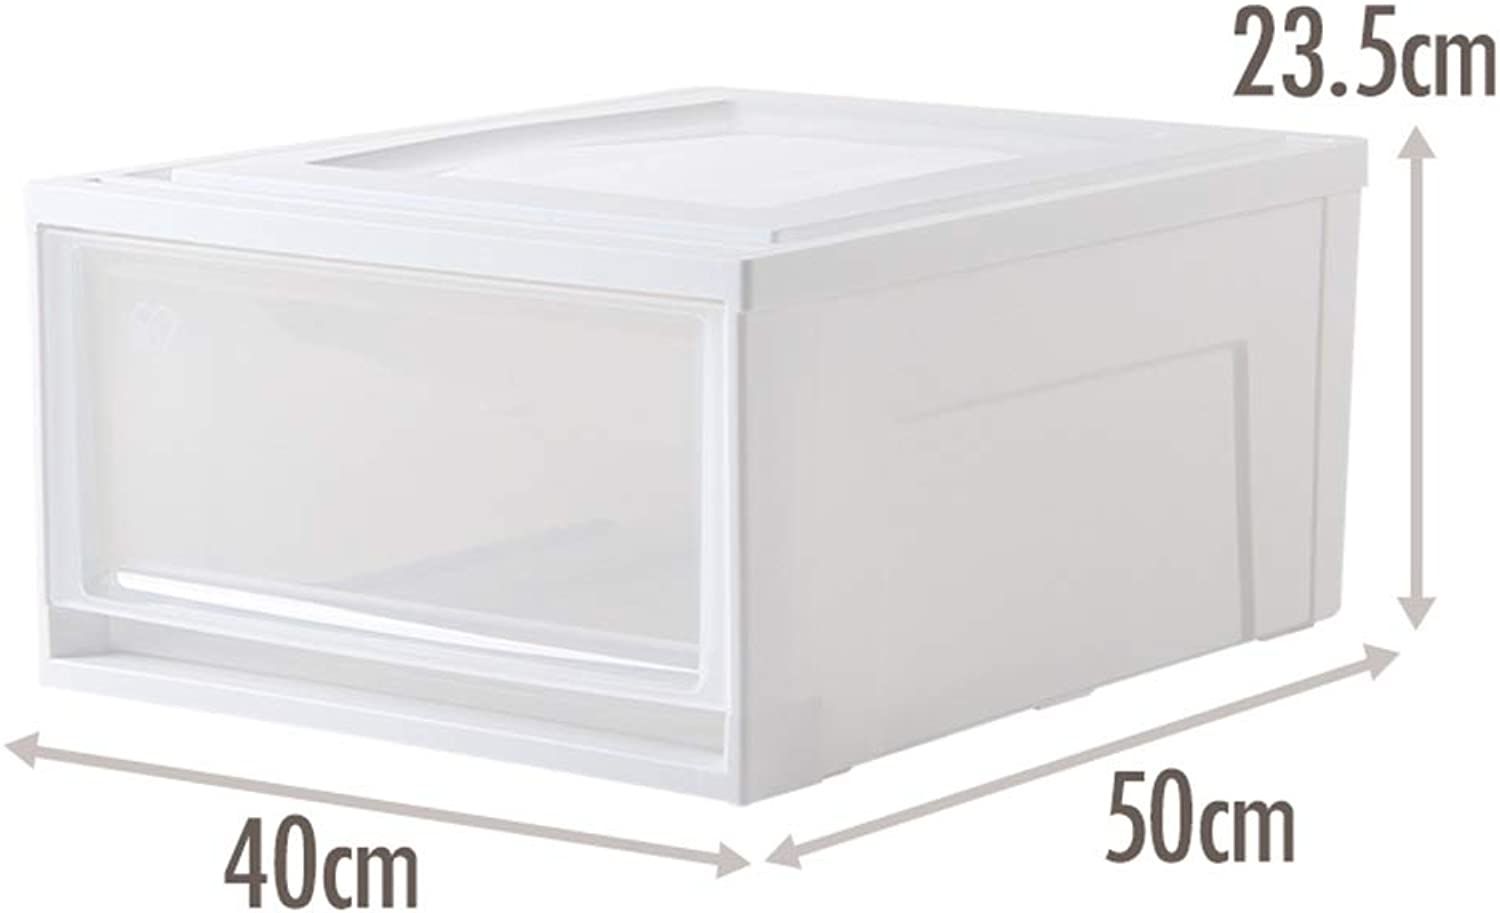 ZHANGQIANG Storage Basket Laundry Basket Plastic Beads Storage Containers Box with Lid (color   White, Size   Medium)